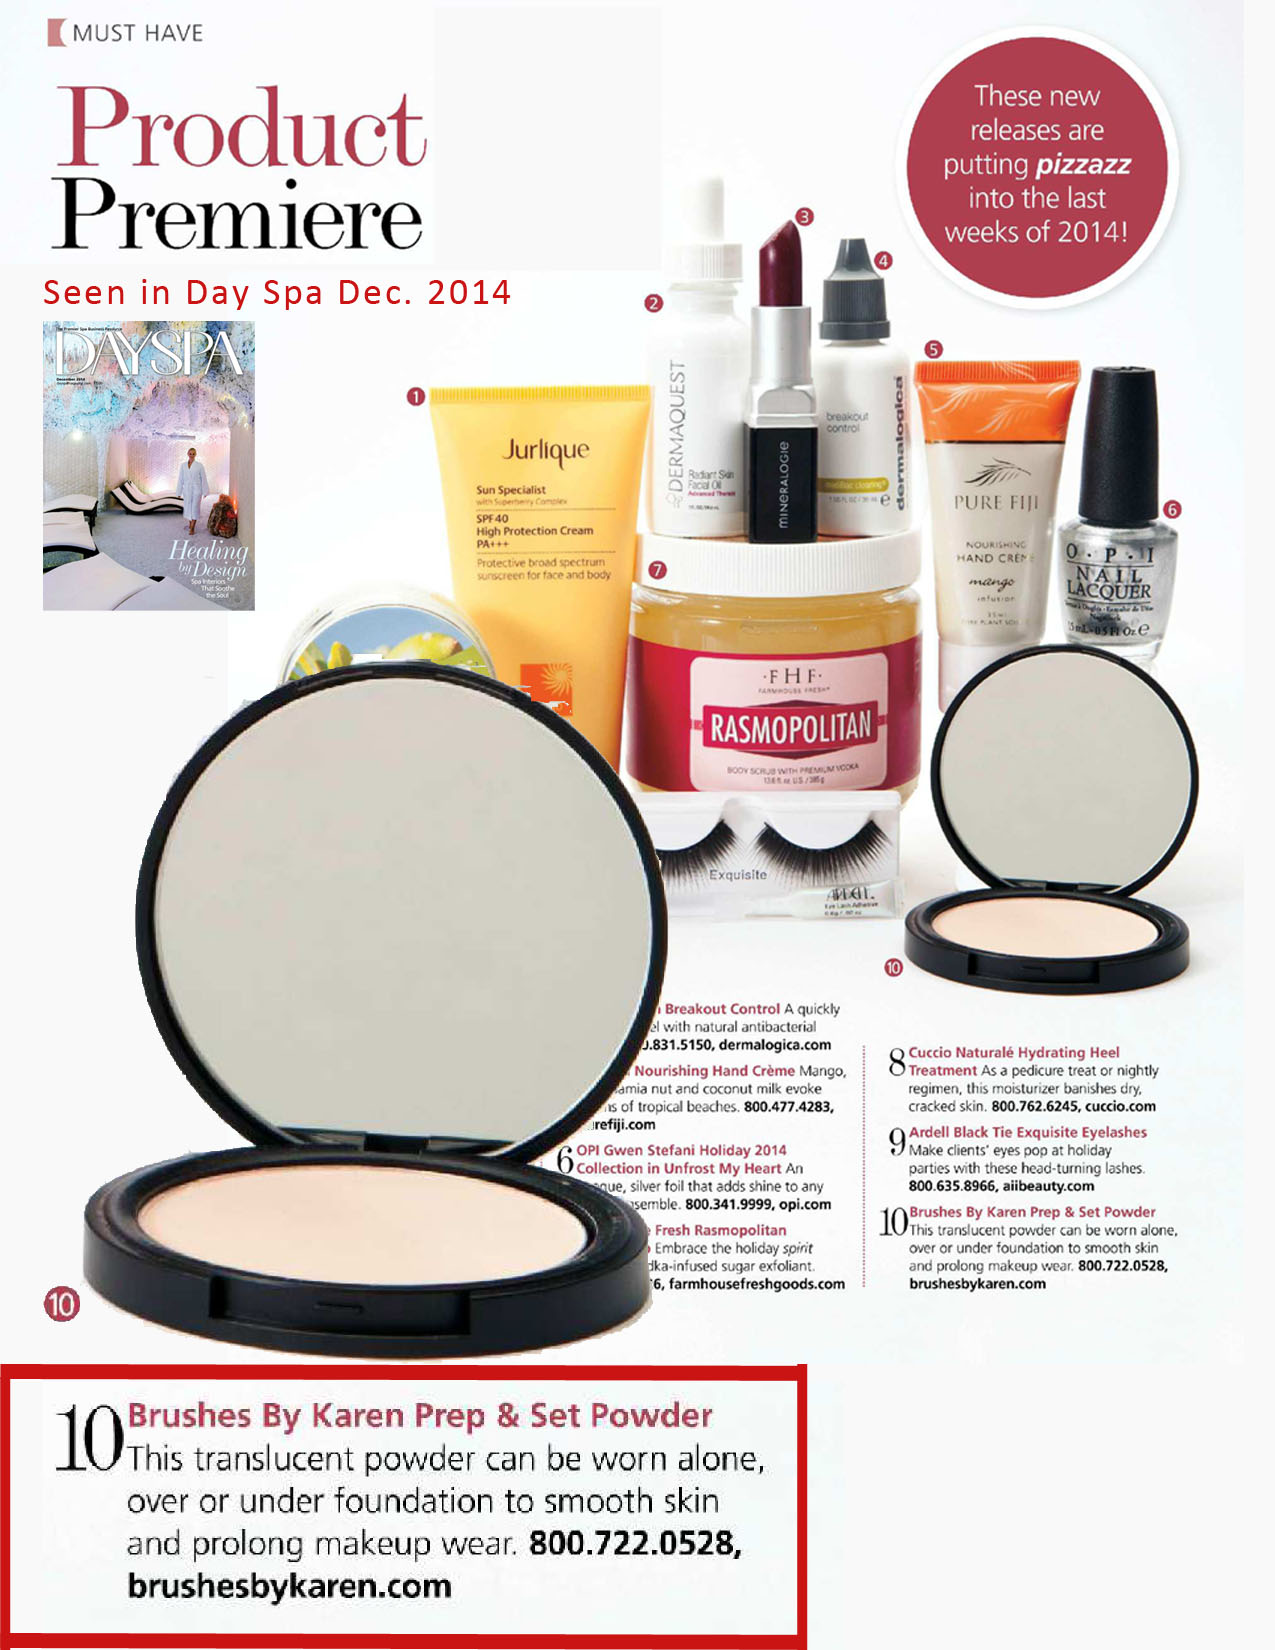 Pep & Set Powders featured in Day Spa Magazine - December 2012